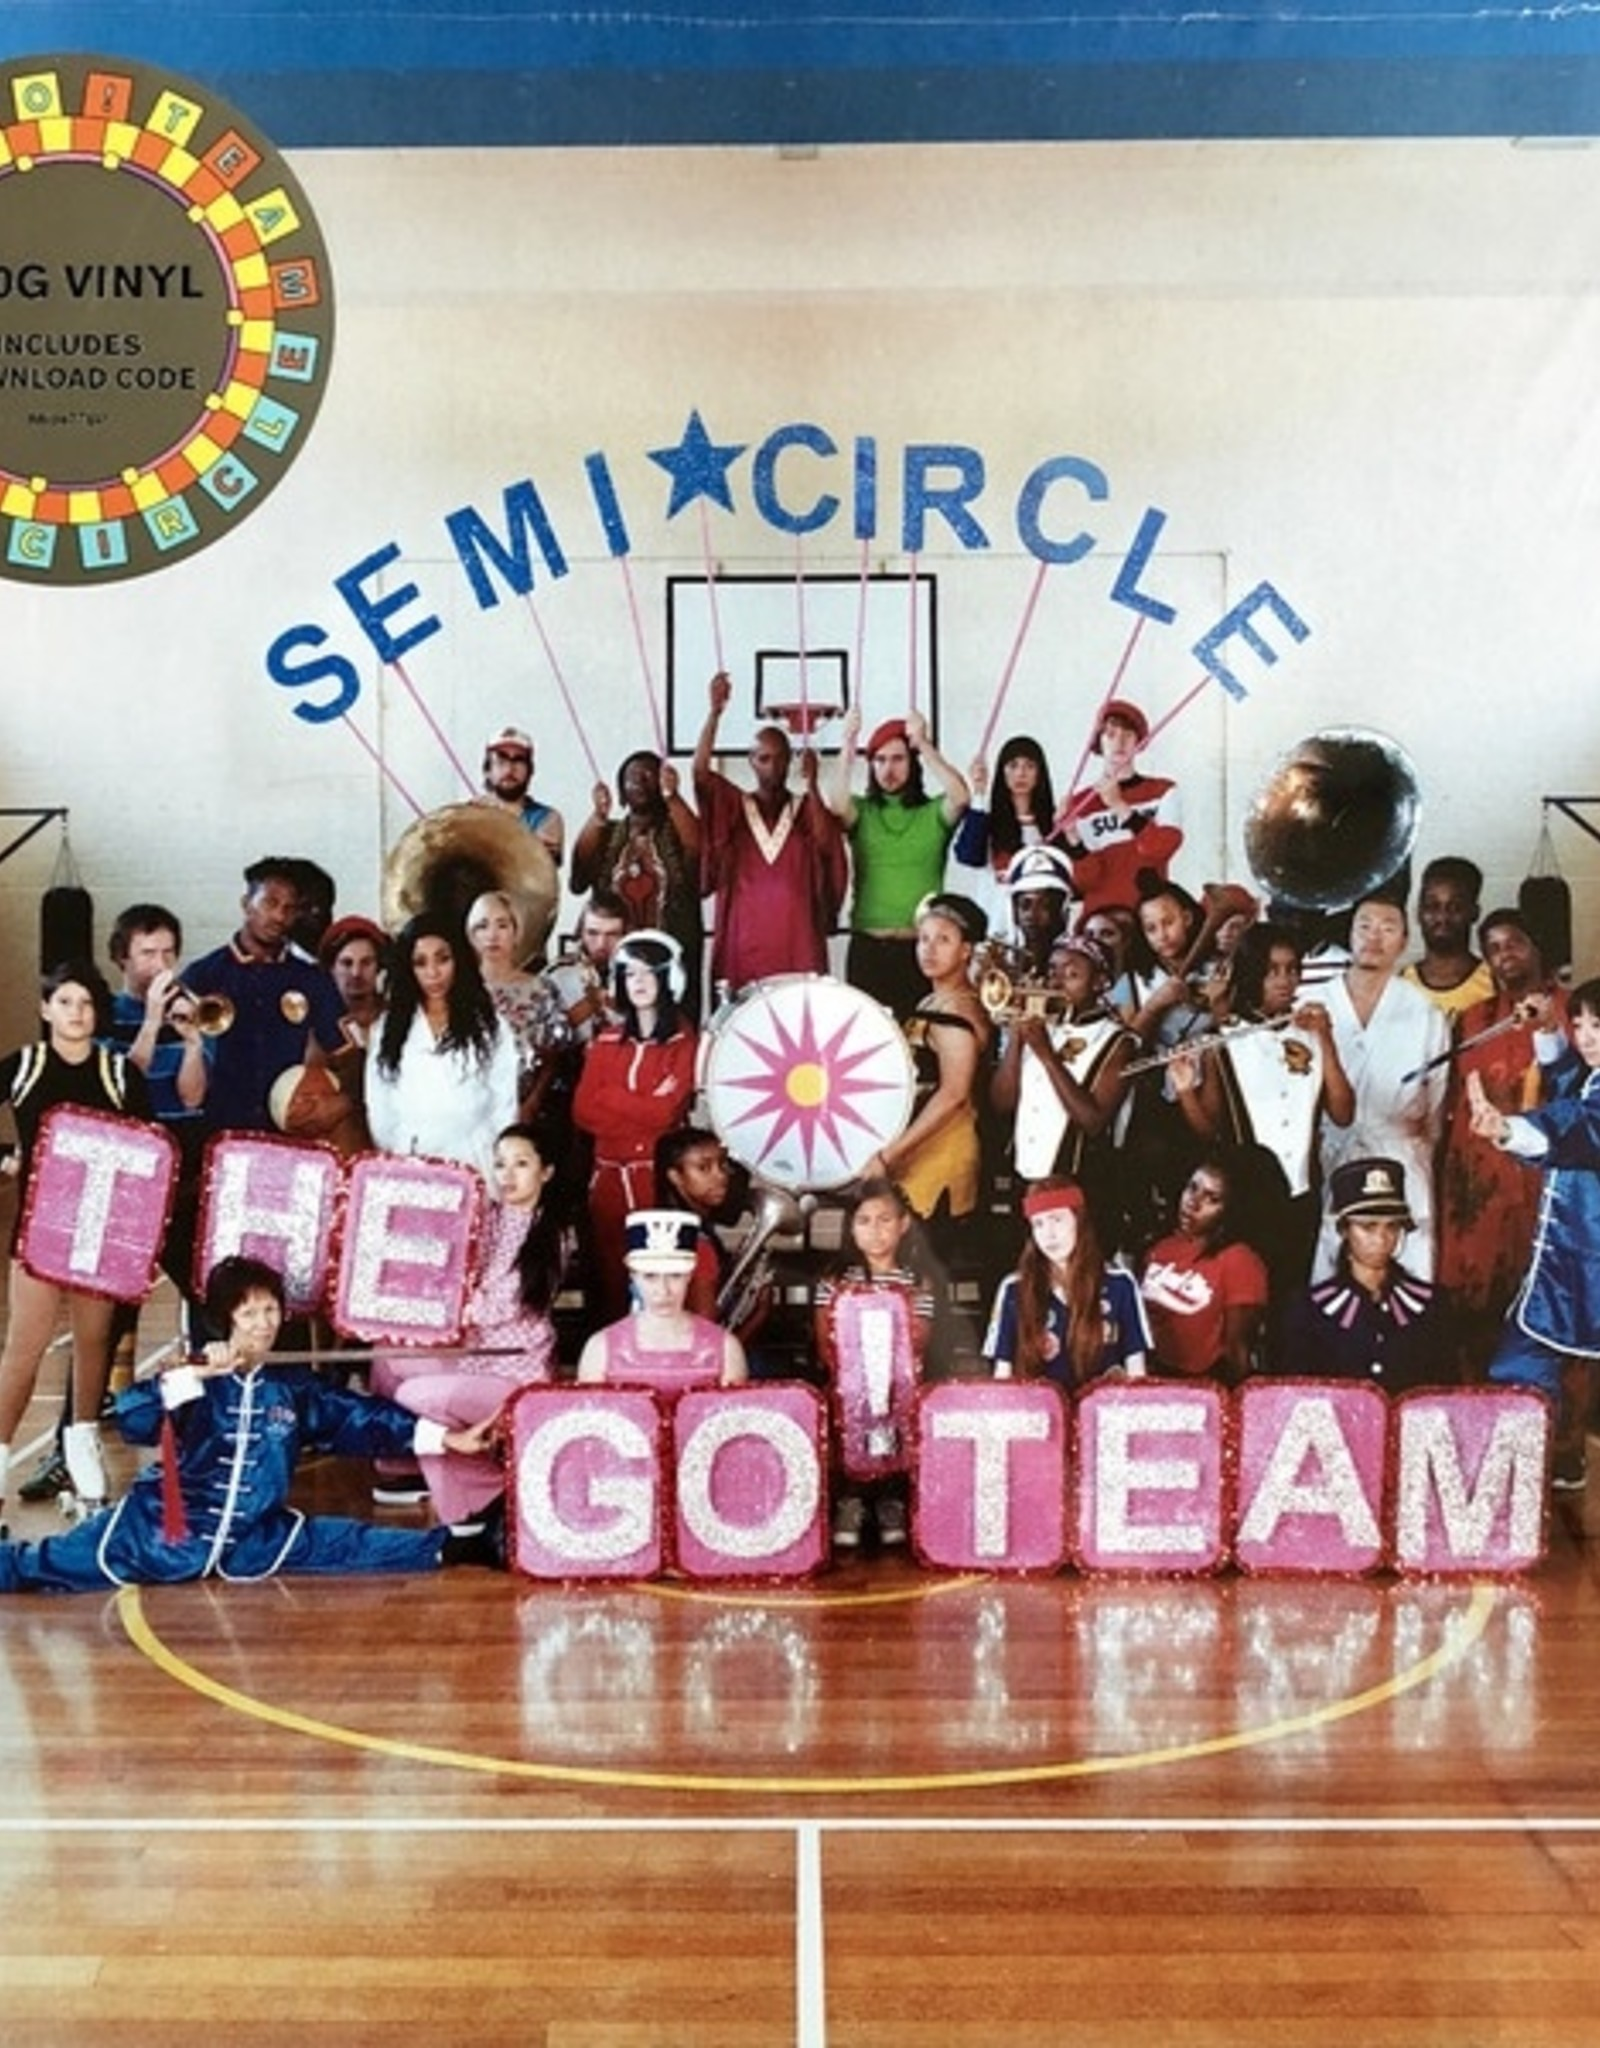 The Go! Team - Semicircle (Indie Only Pink Vinyl)